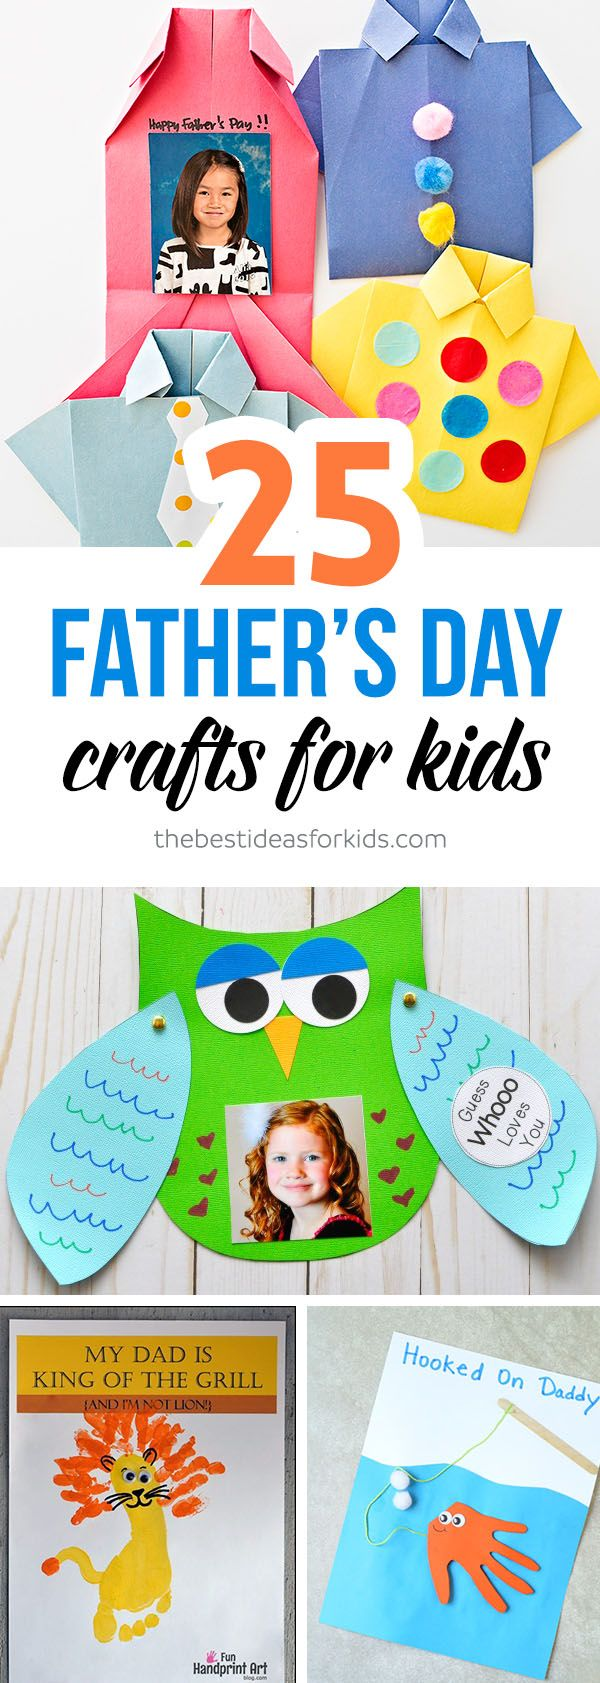 25 of the Best Handmade and Craft Ideas for Father's Day! Tie shirts, cute card ideas, salt dough keepsakes, mugs, handprints, footprints and more! via @bestideaskids